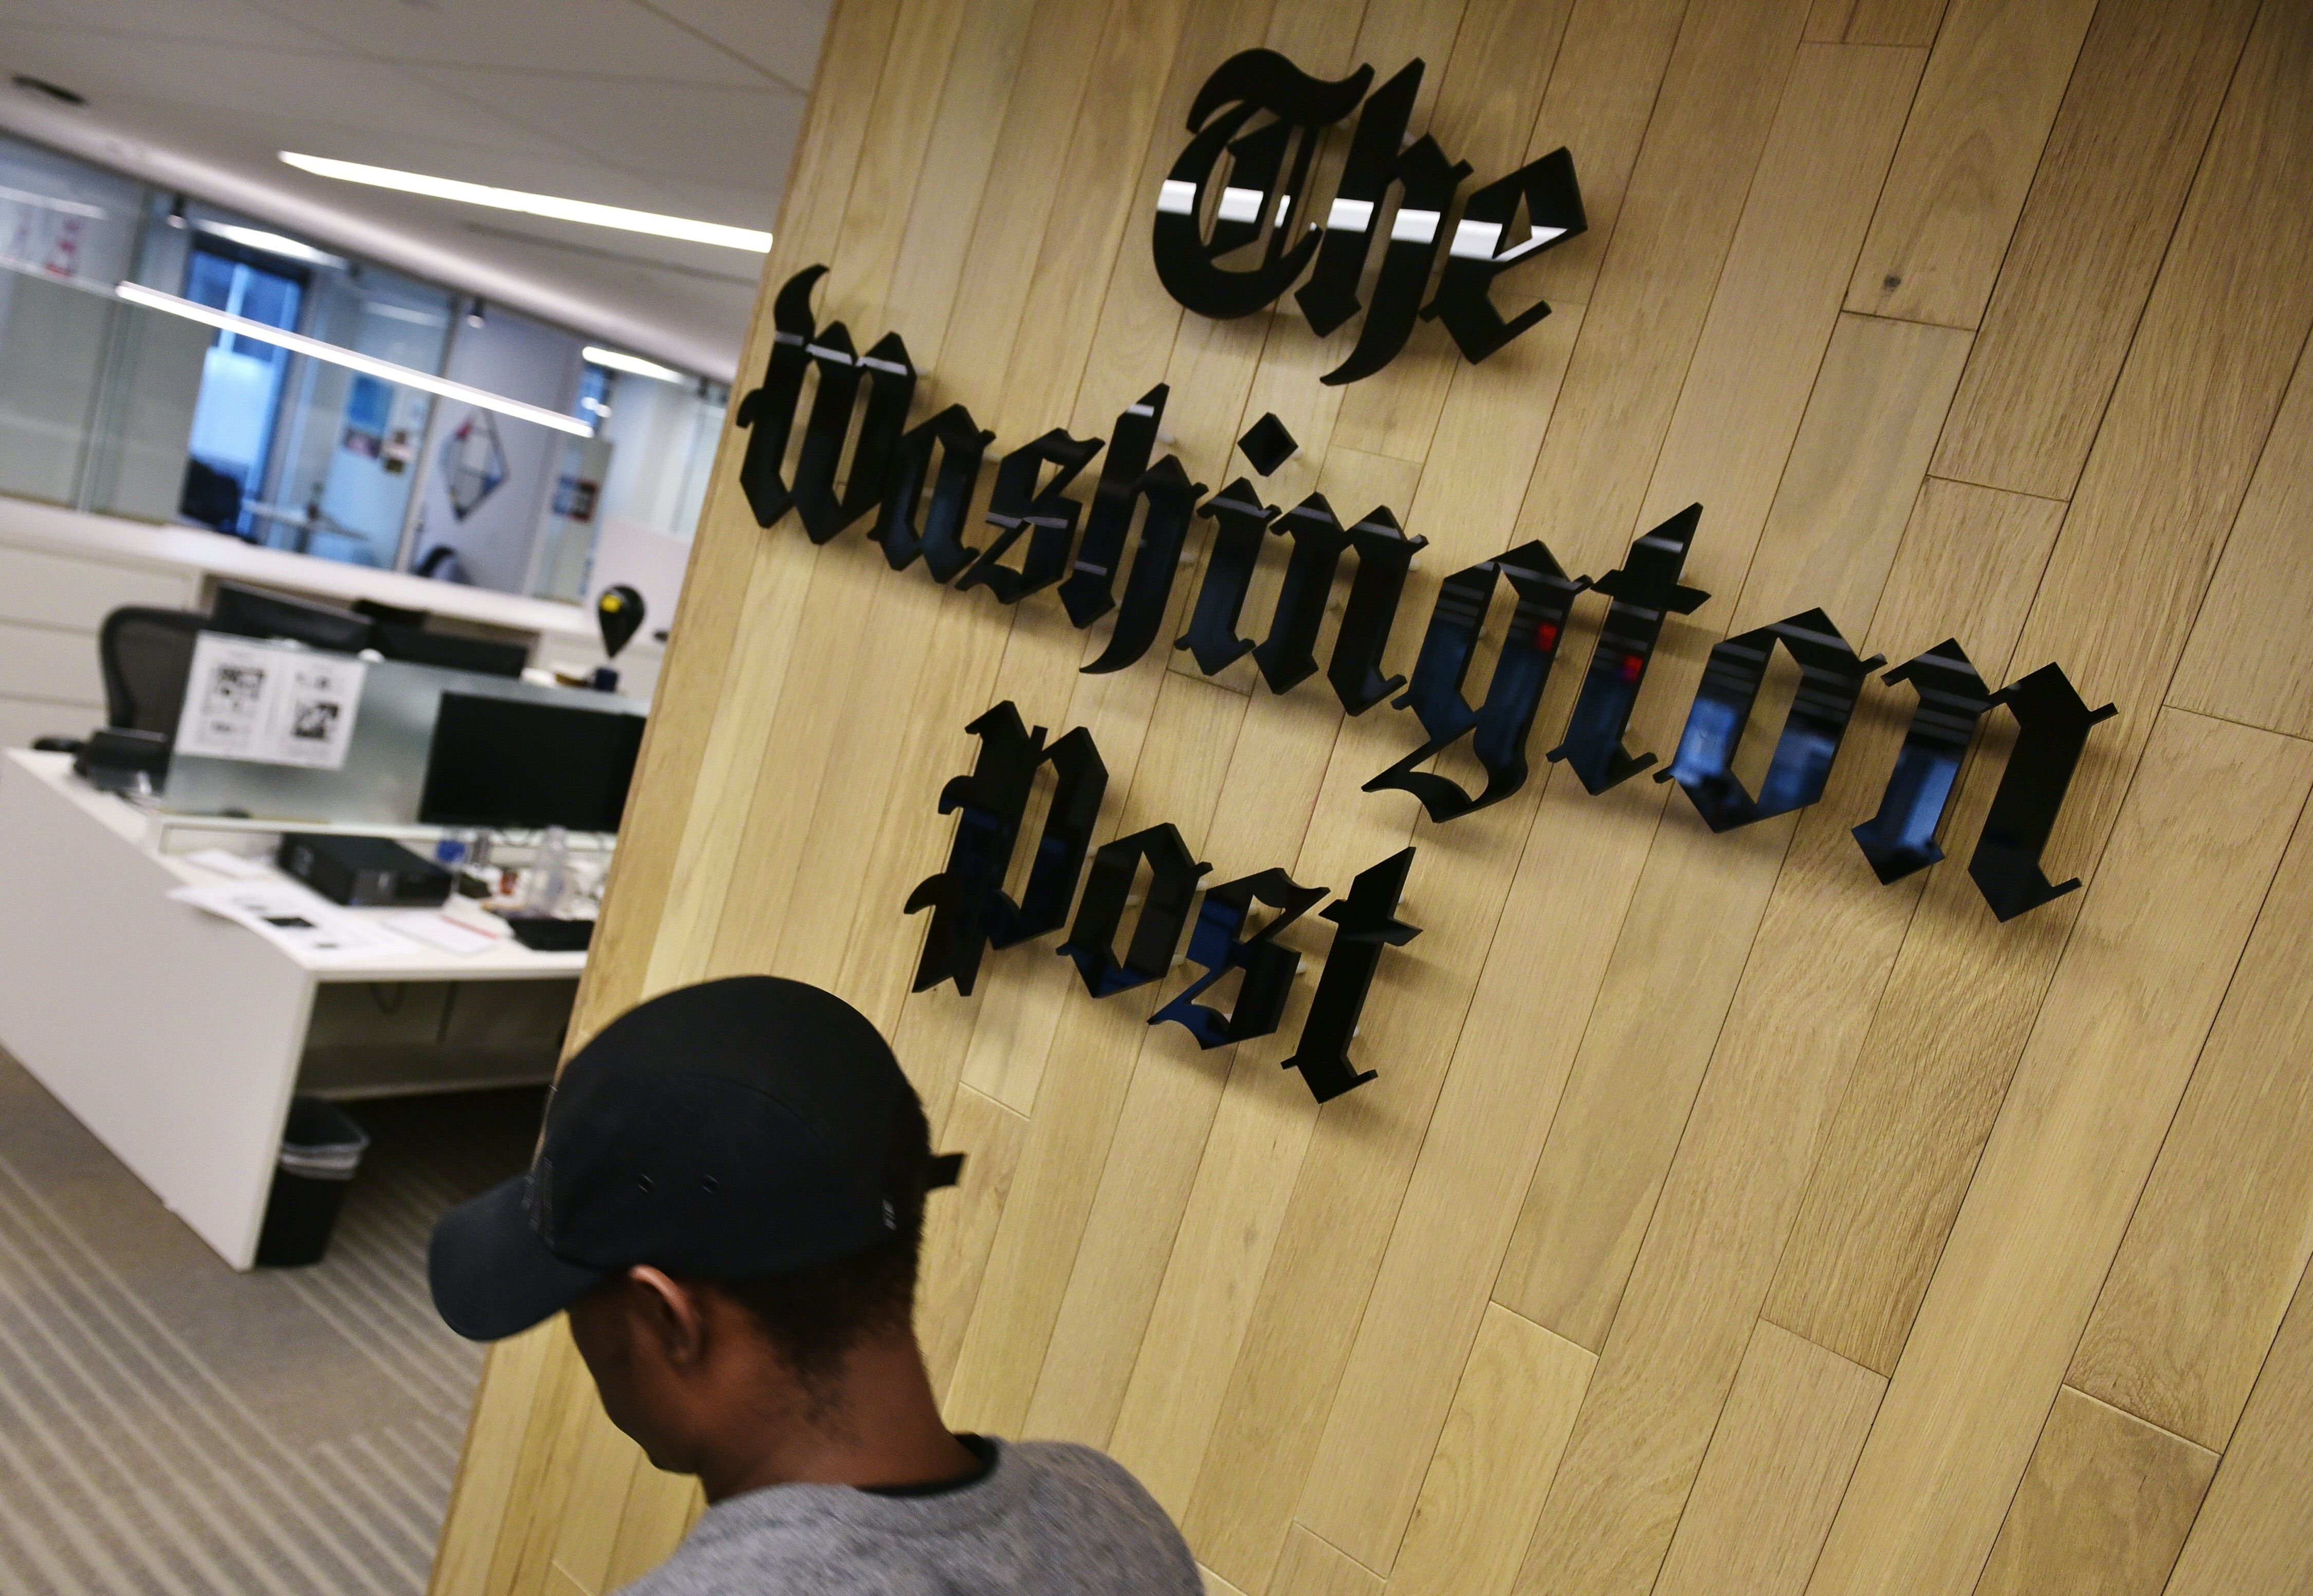 Washington Post expands Spanish language content with podcast and opinion columns